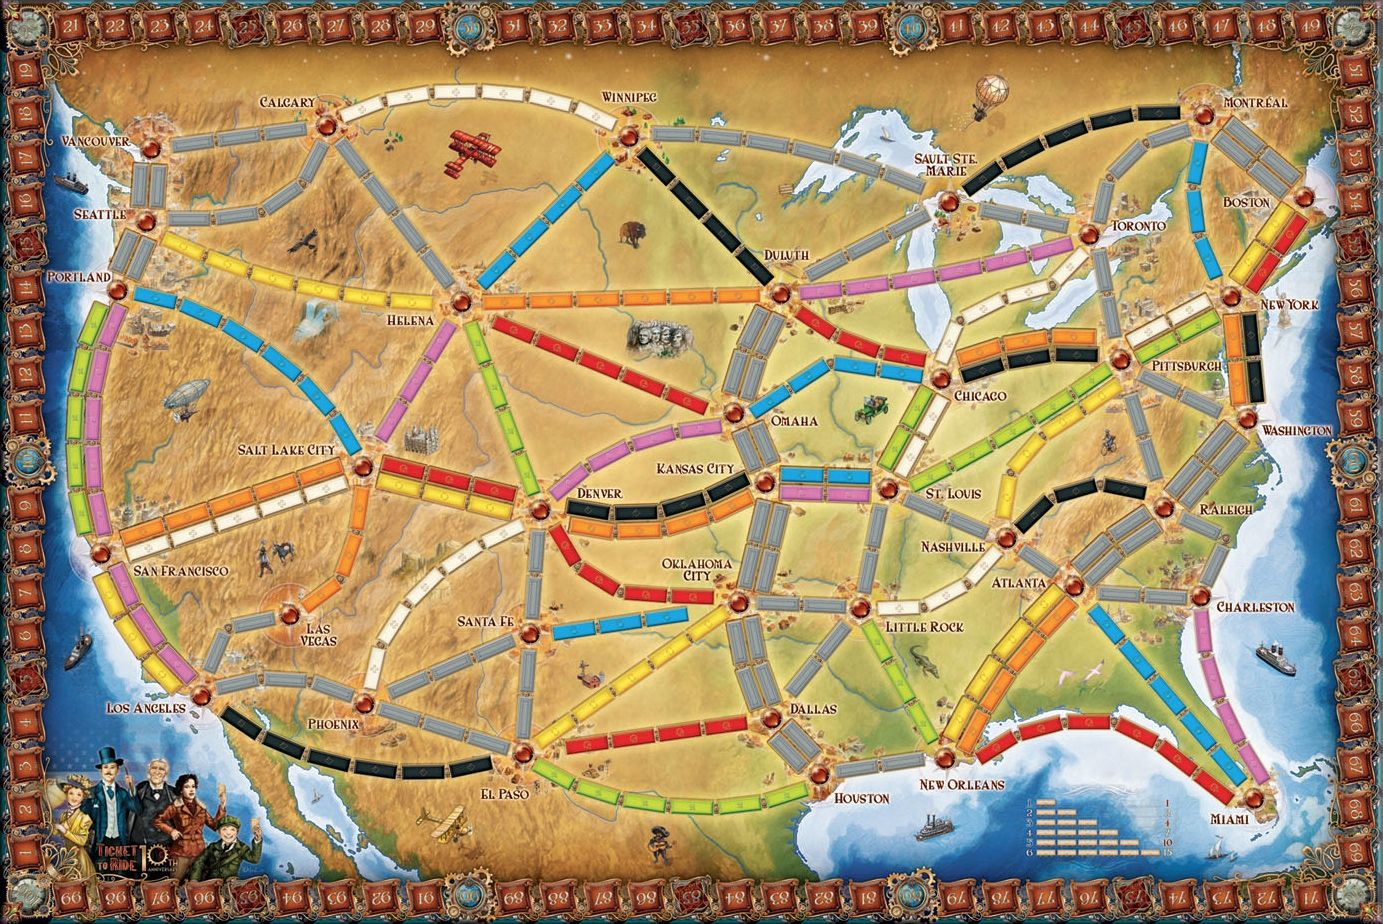 Anniversaries Ticket to Ride 10th Anniversary